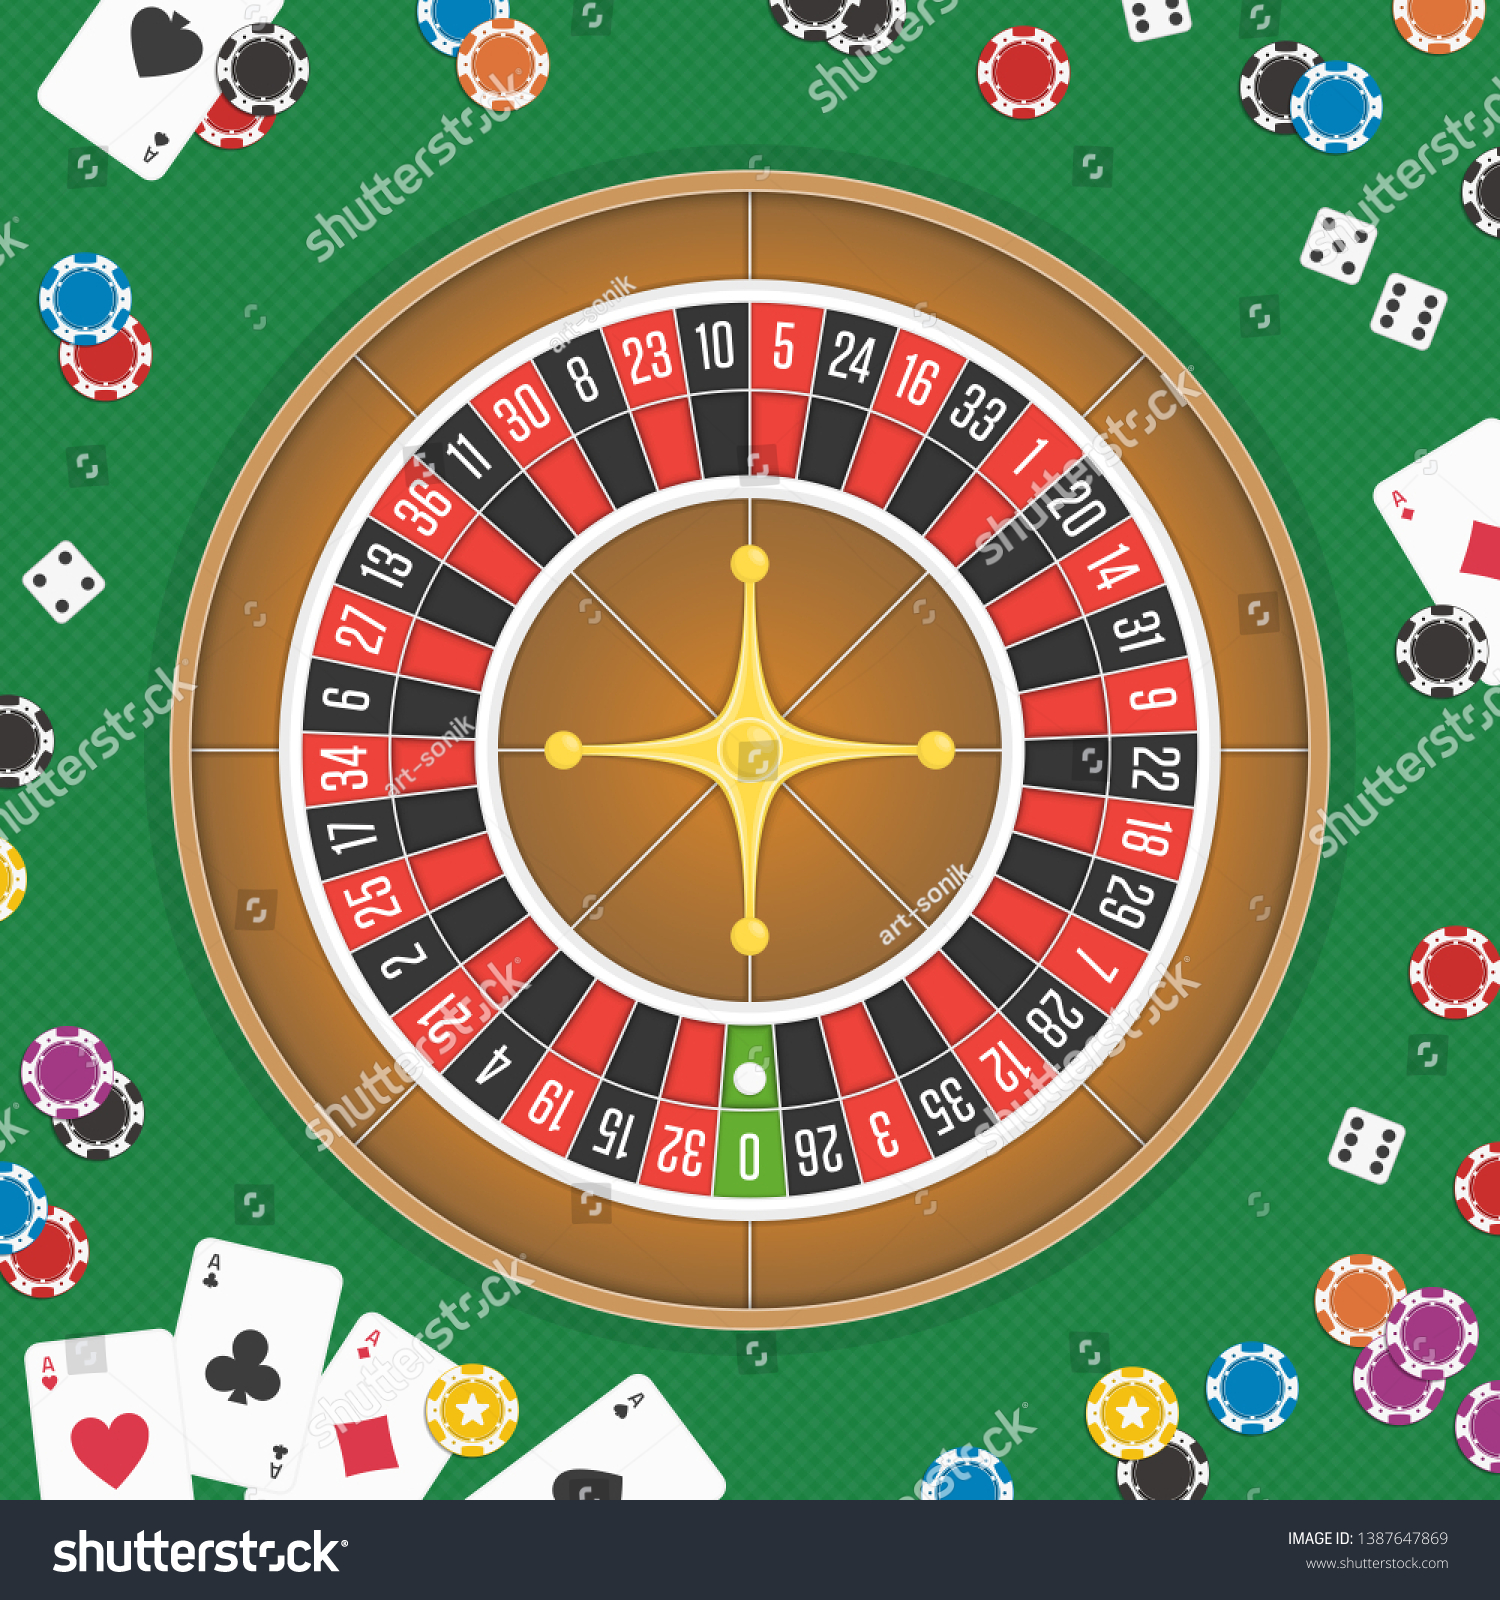 rich casino guess the game